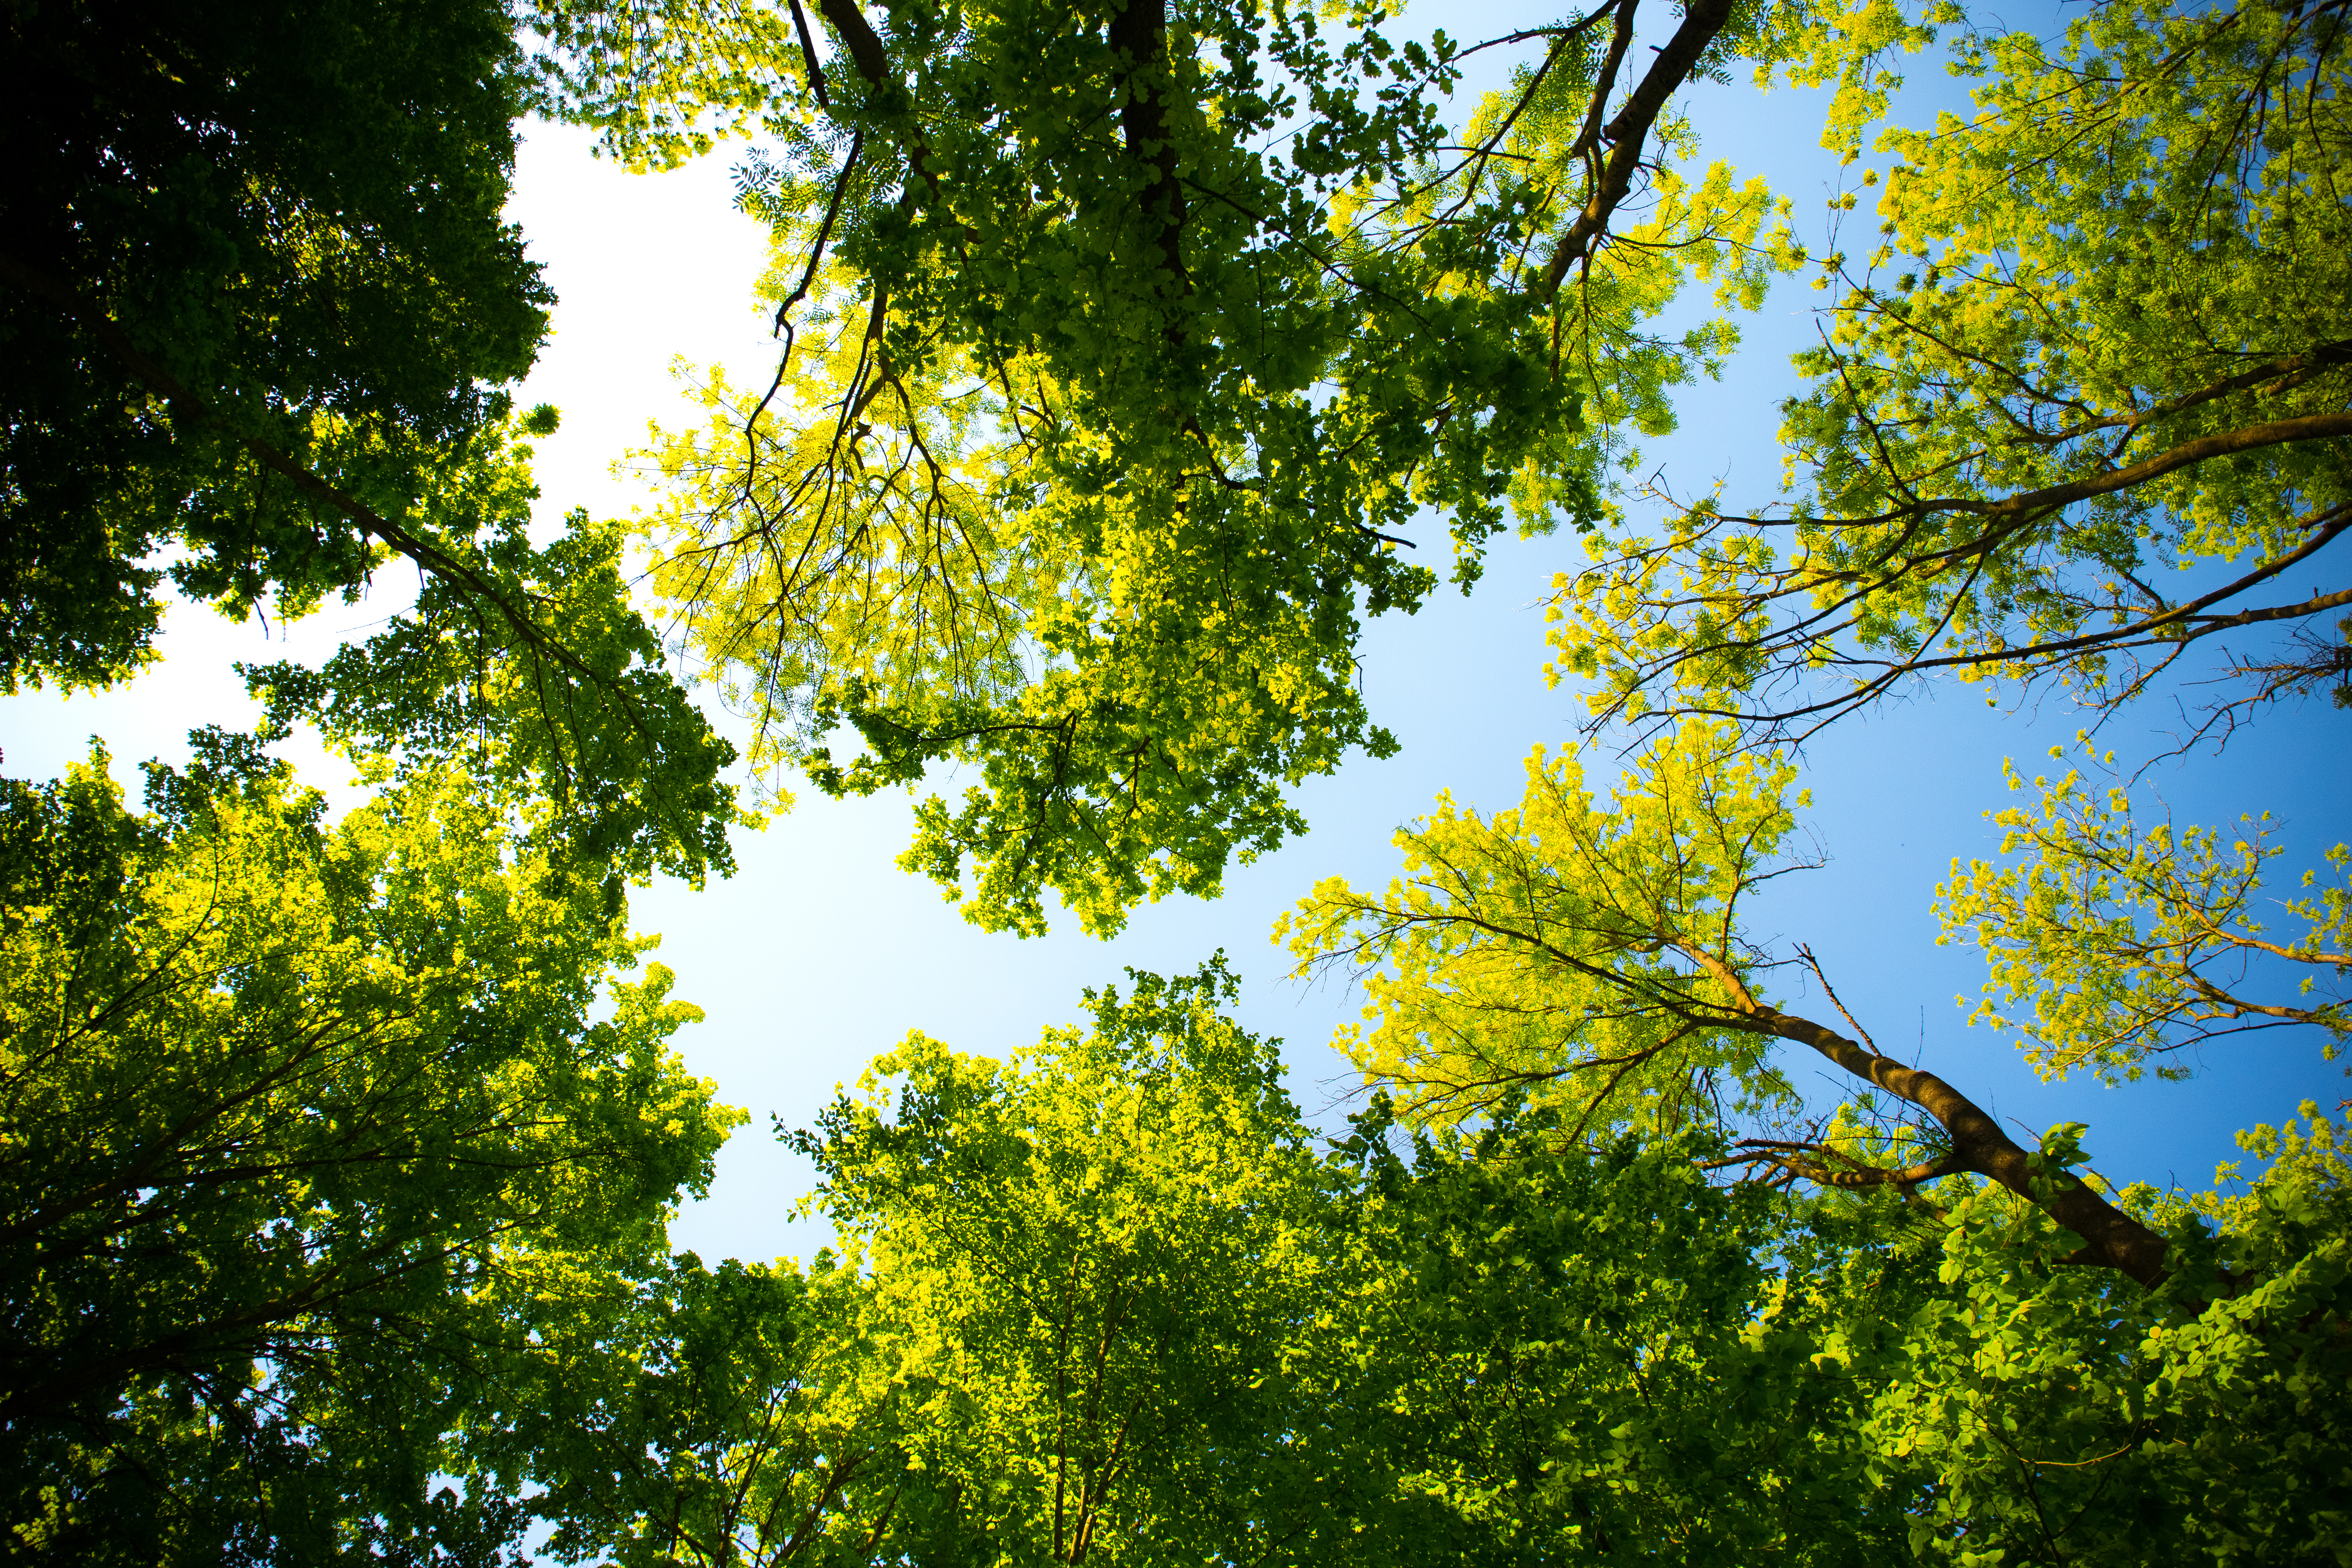 green trees and sky_looking up_pexels-photo-589802 a